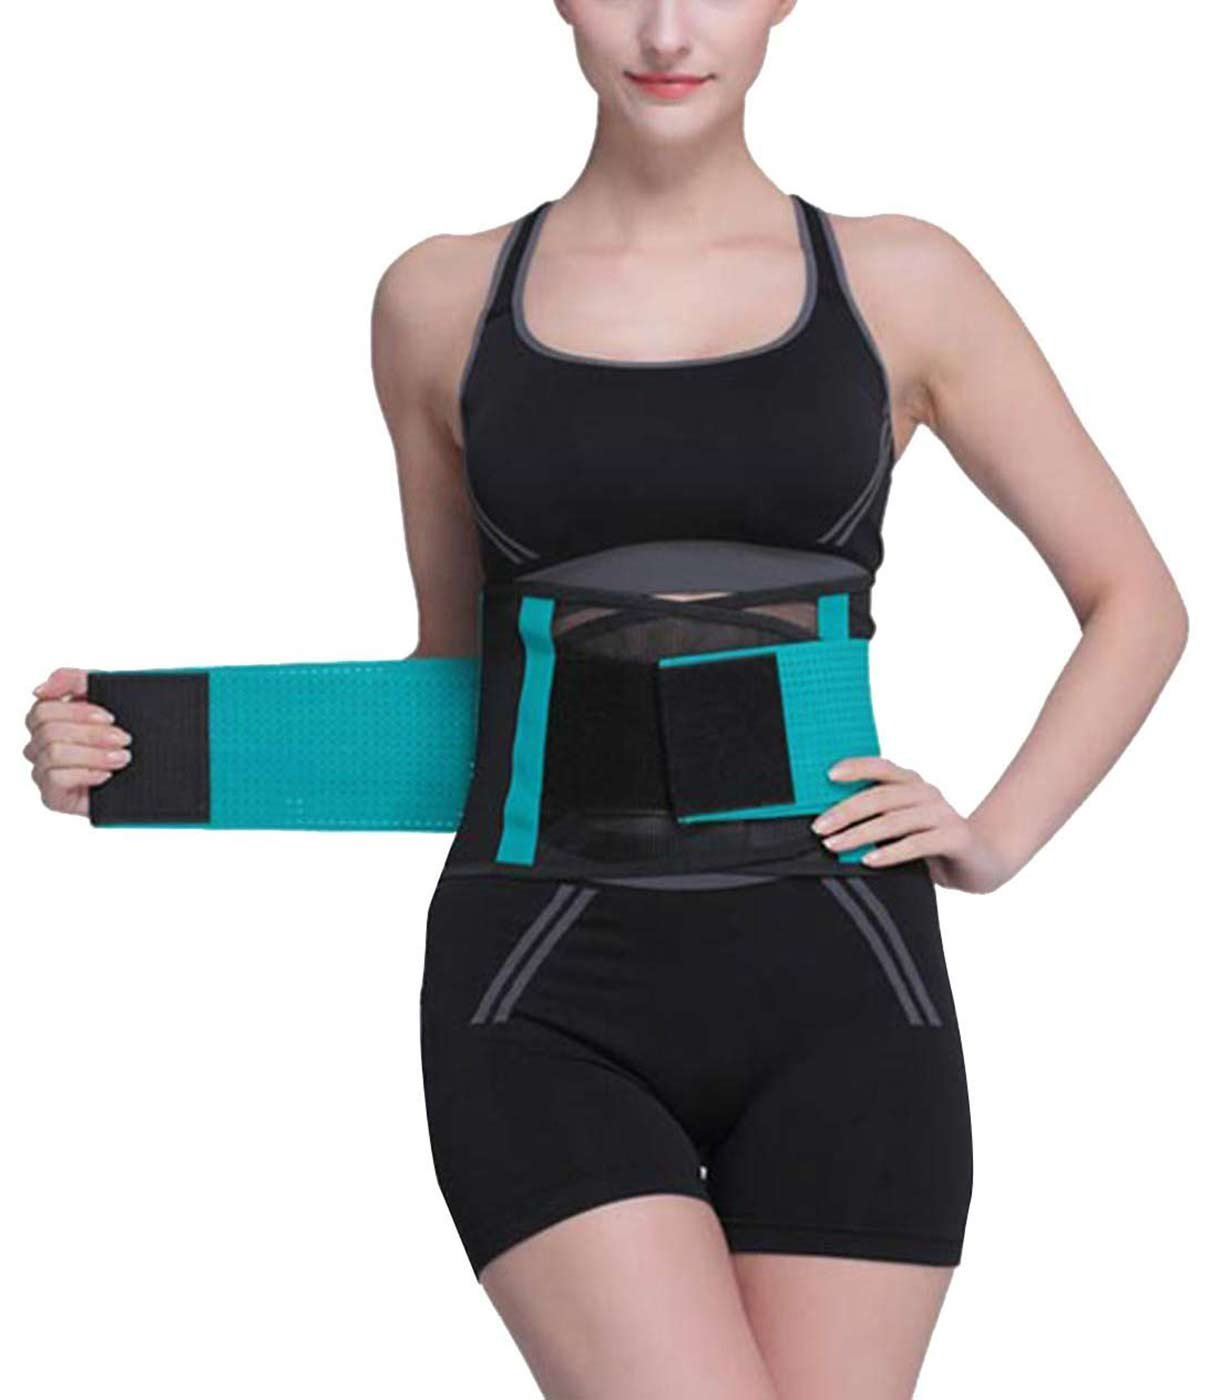 Waist Trimmer Belt - Neoprene Waist Sweat Band for Slimmer Water Weight Loss Mobile Tummy Tuck Belts Strengthen Tummy Abs During Exercising Workout Size XXL Green